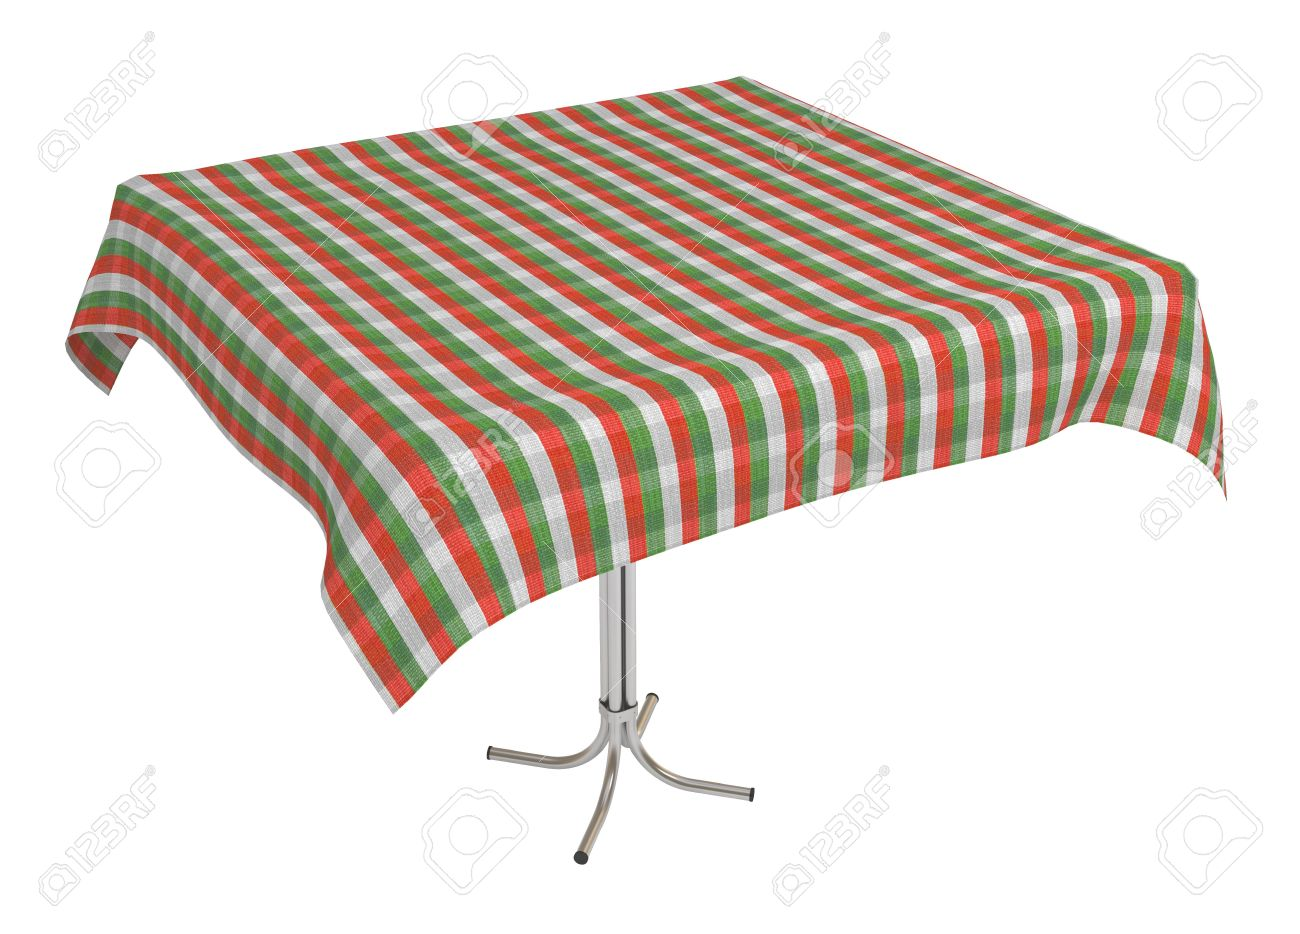 Table With Cloth, Italian Colors Tablecloth, 3d Illustration, Isolated On  White Stock Illustration